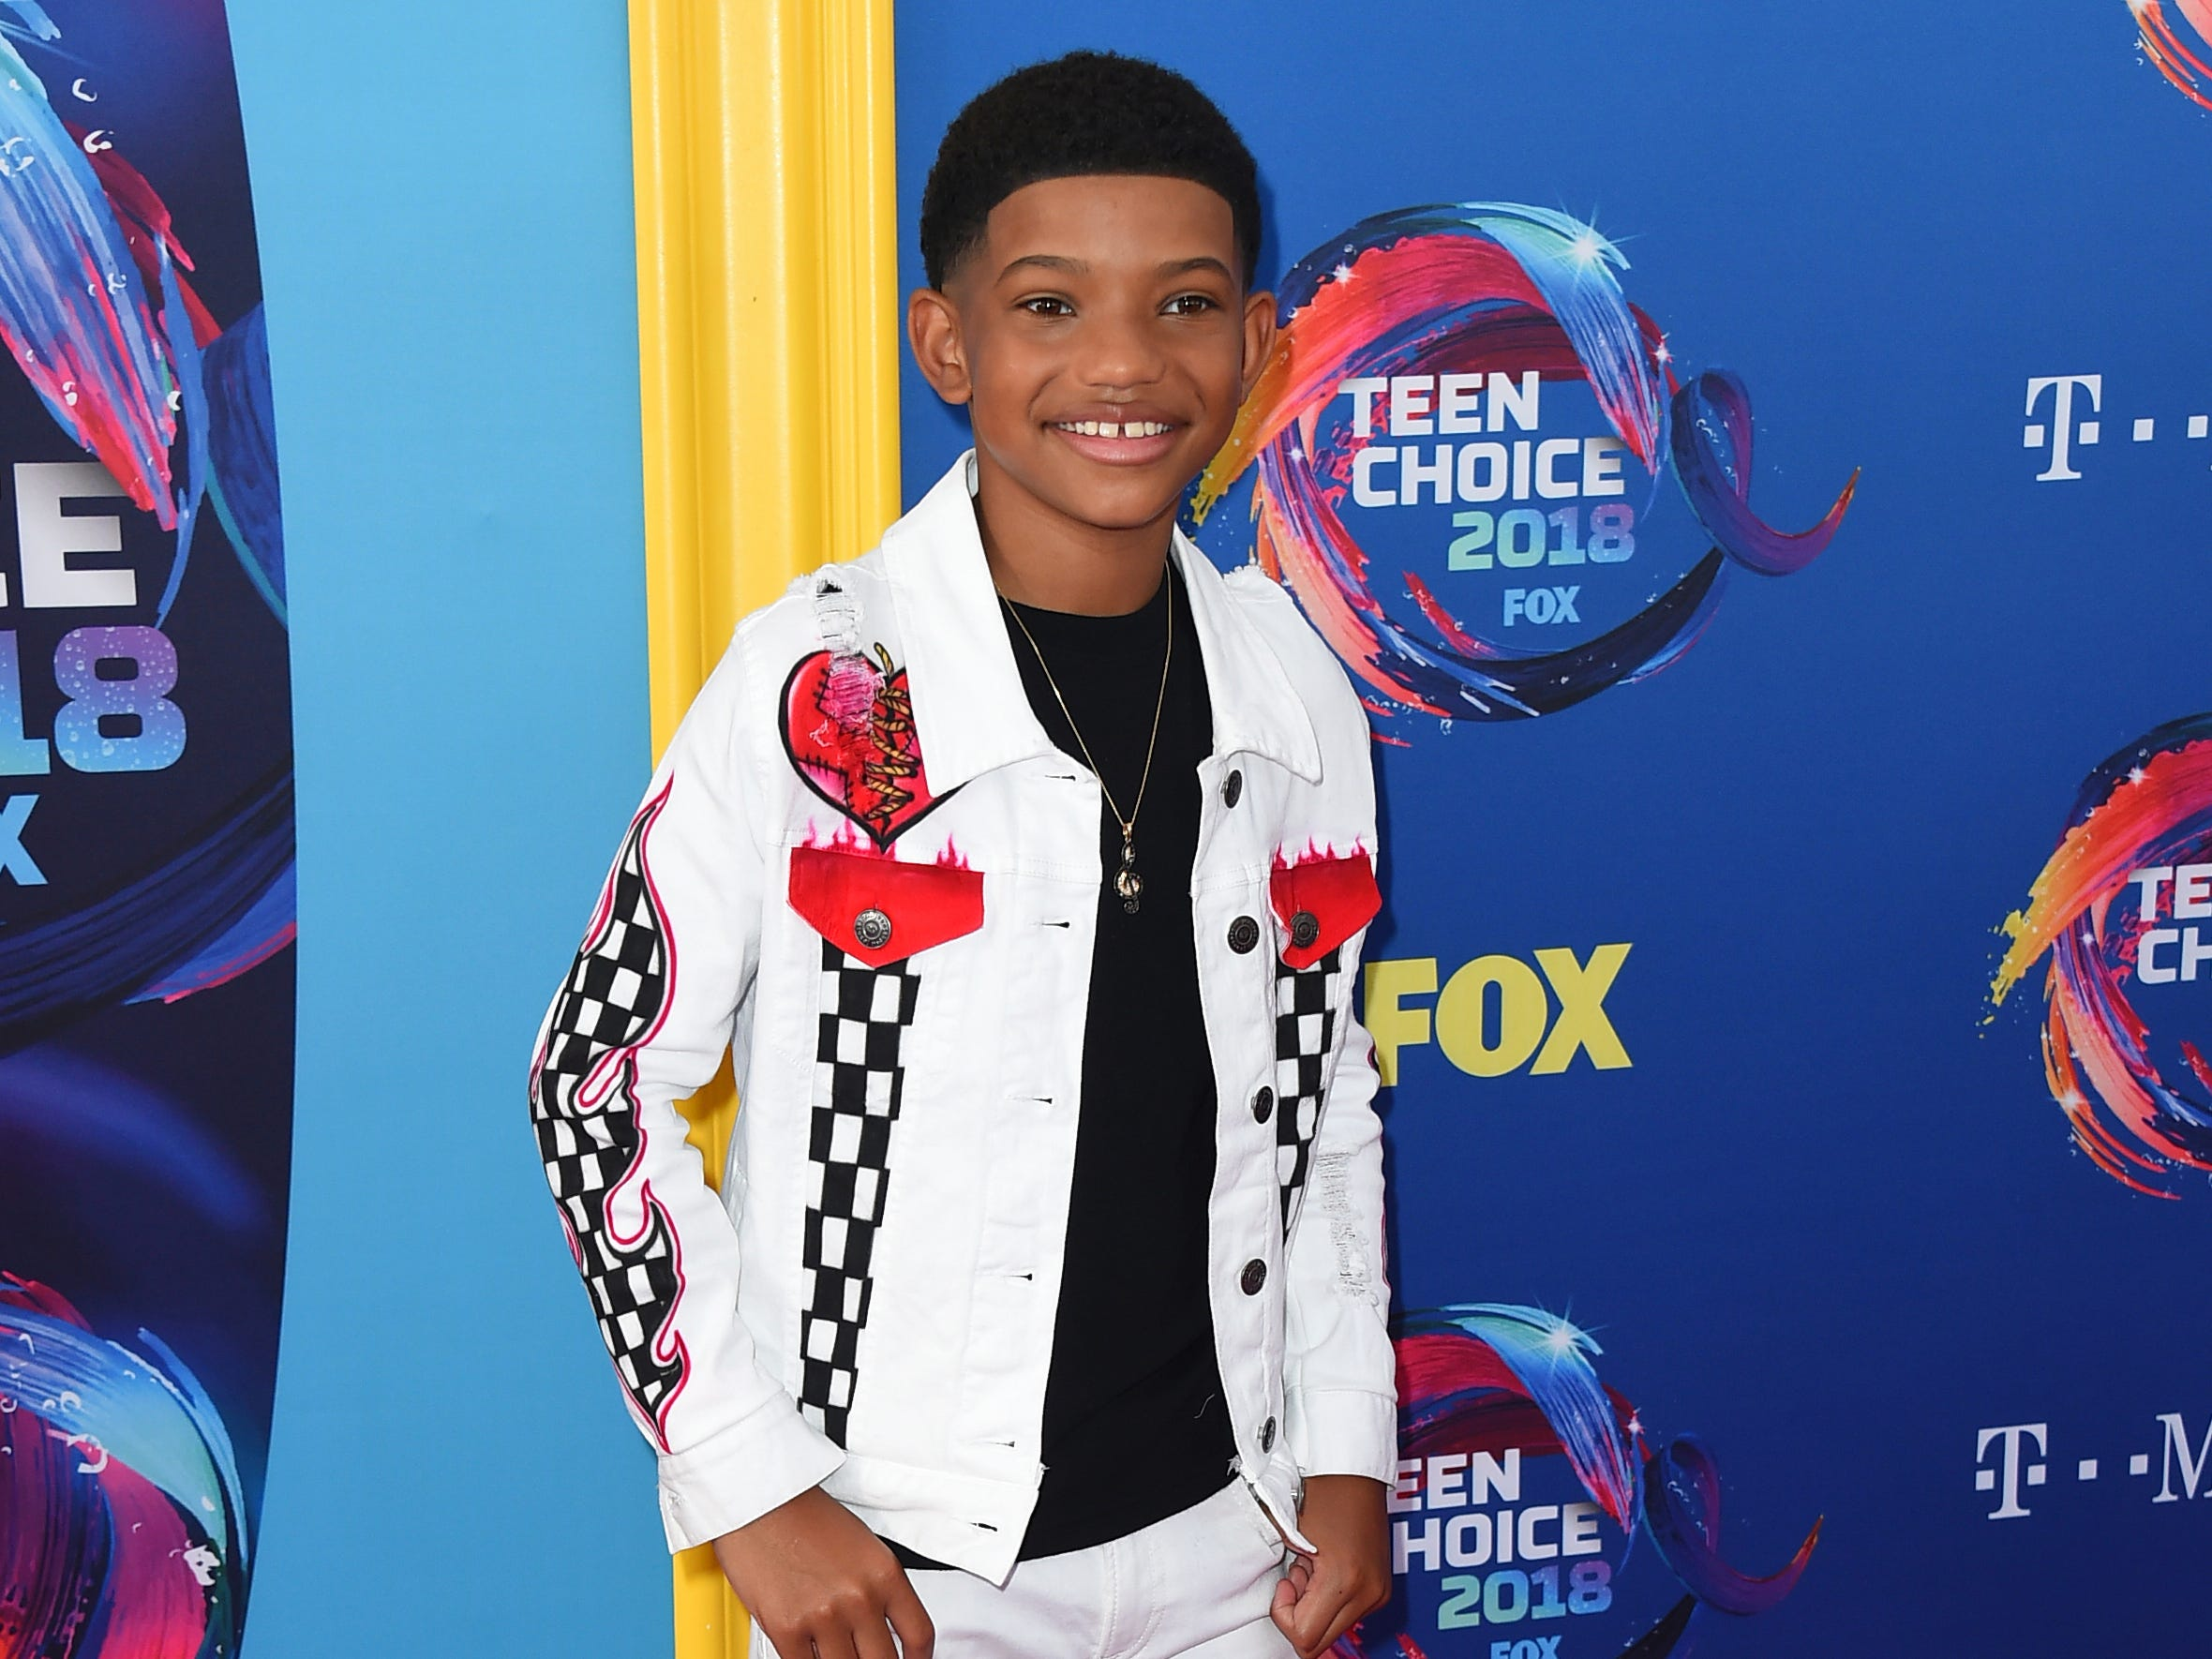 Lonnie Chavis arrives at the Teen Choice Awards at The Forum on Sunday, Aug. 12, 2018, in Inglewood, Calif. (Photo by Jordan Strauss/Invision/AP) ORG XMIT: CAPM118